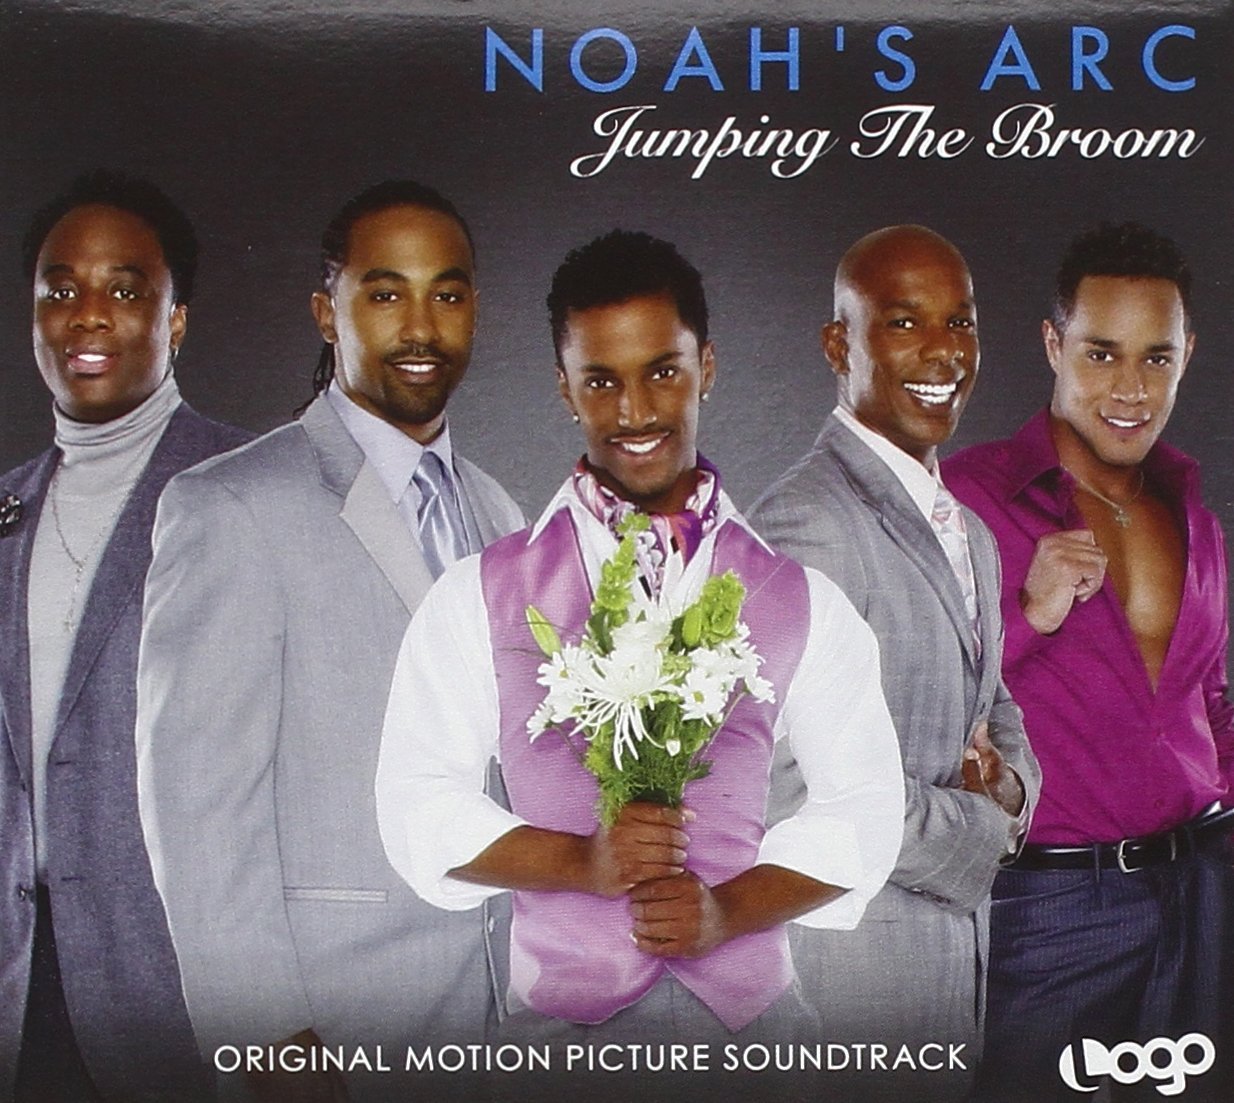 Noah's Arc: Jumping the Broom                                                                                                                                                                                                                                                                                                                                                                                                <span class=